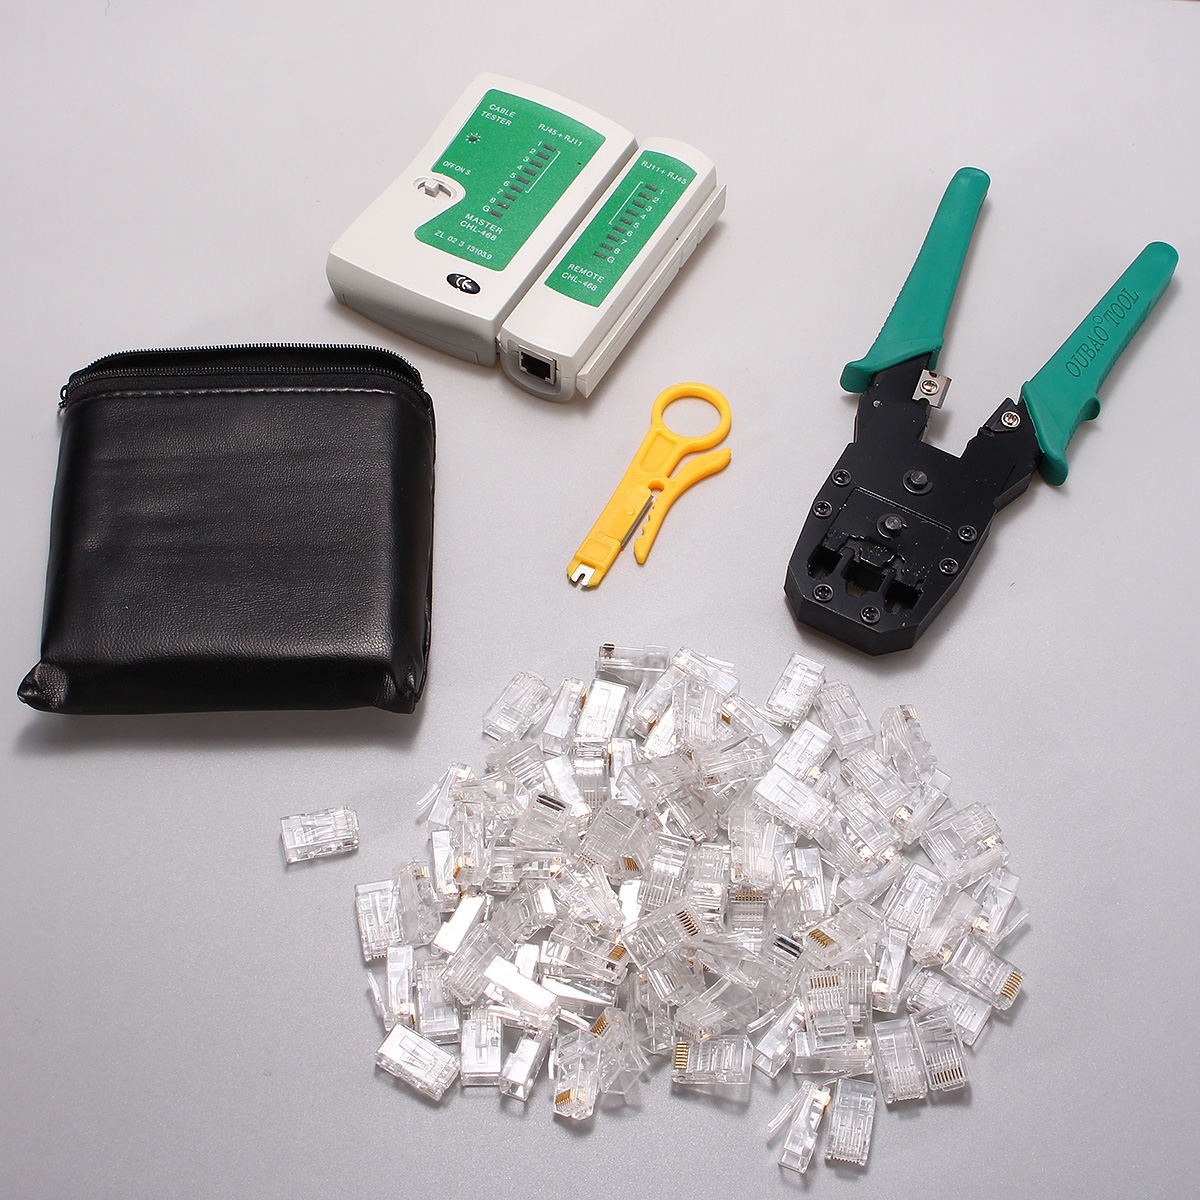 Rj45 Rj11 Rj12 Cat5 Lan Network Wire Stripper Pliers Crimper Cable Plug Wiring Tester Tools Kit Set